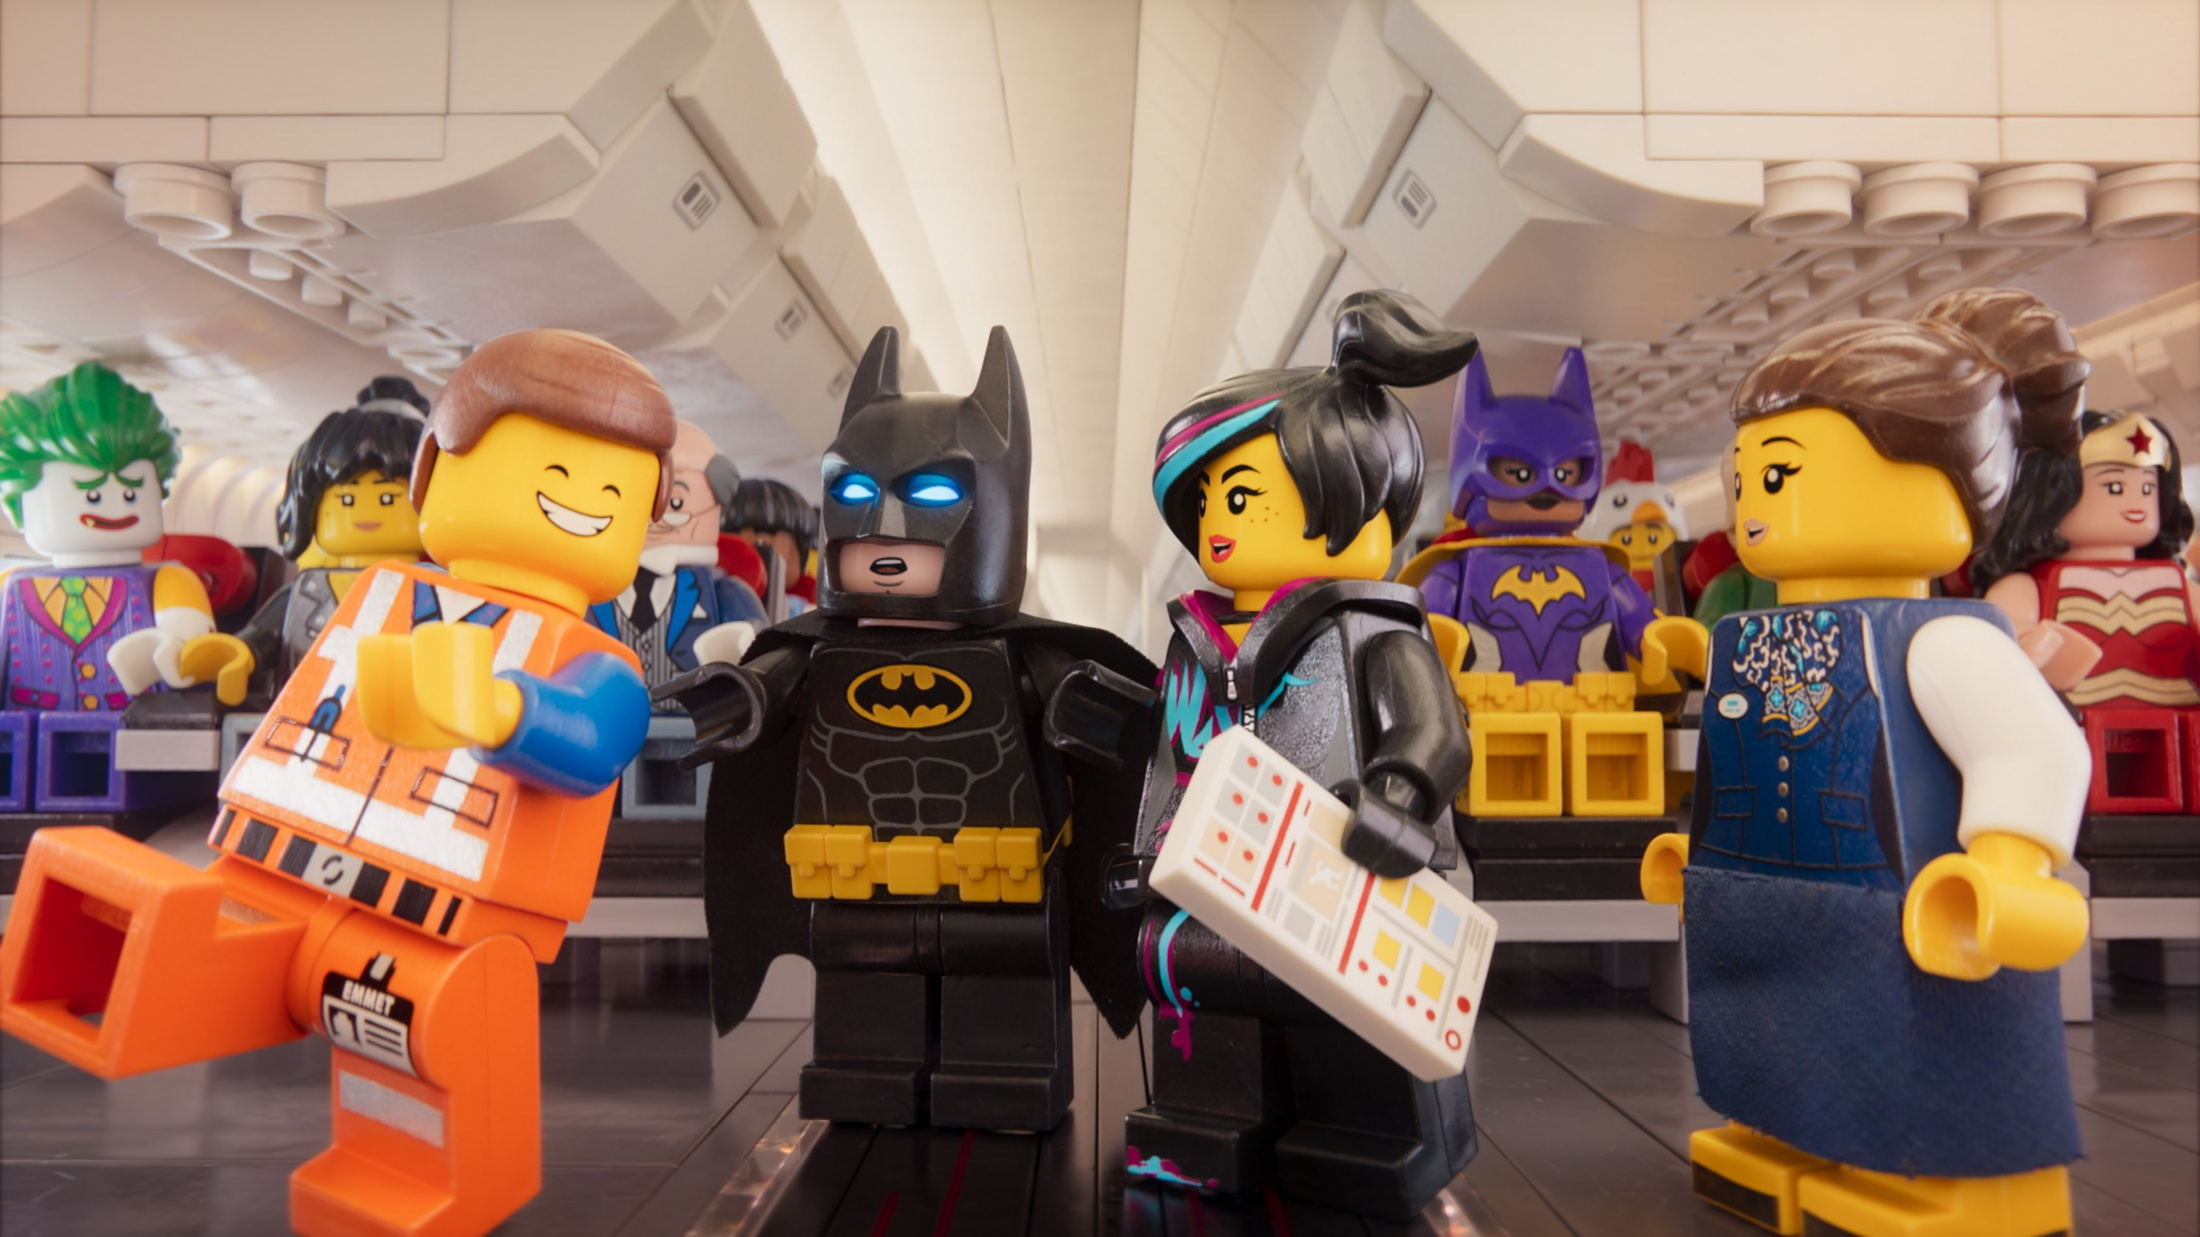 Image Media for The LEGO Movie 2/Turkish Airlines Safety Video